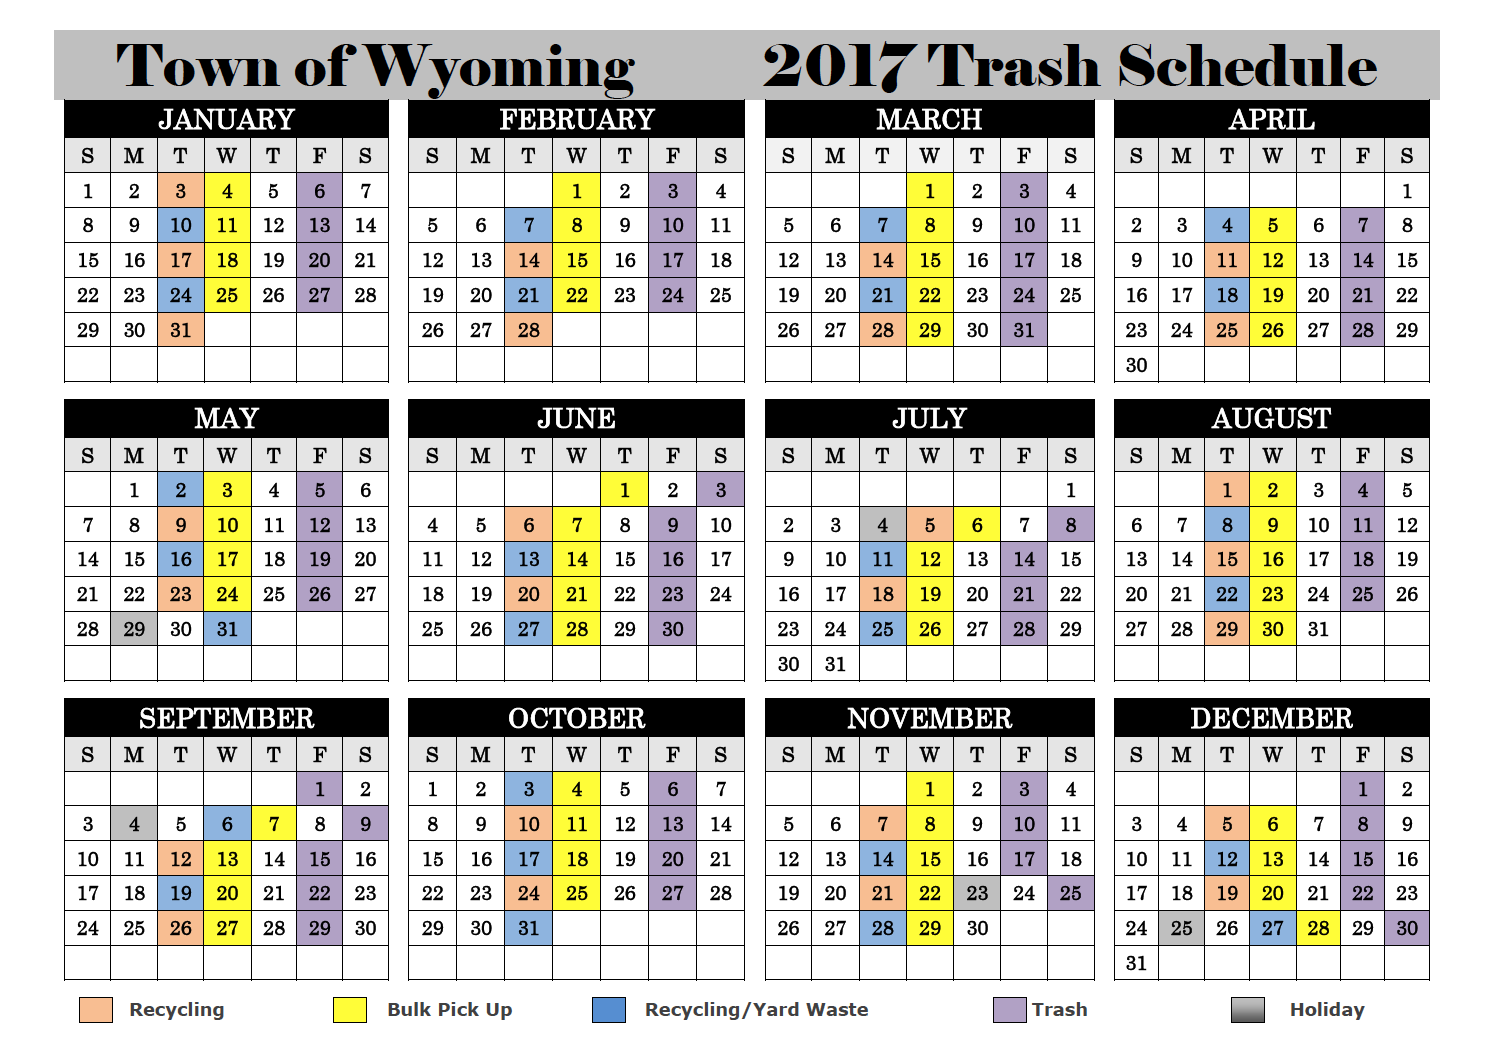 2017 Trash, Recycling and Yard Waste Schedule